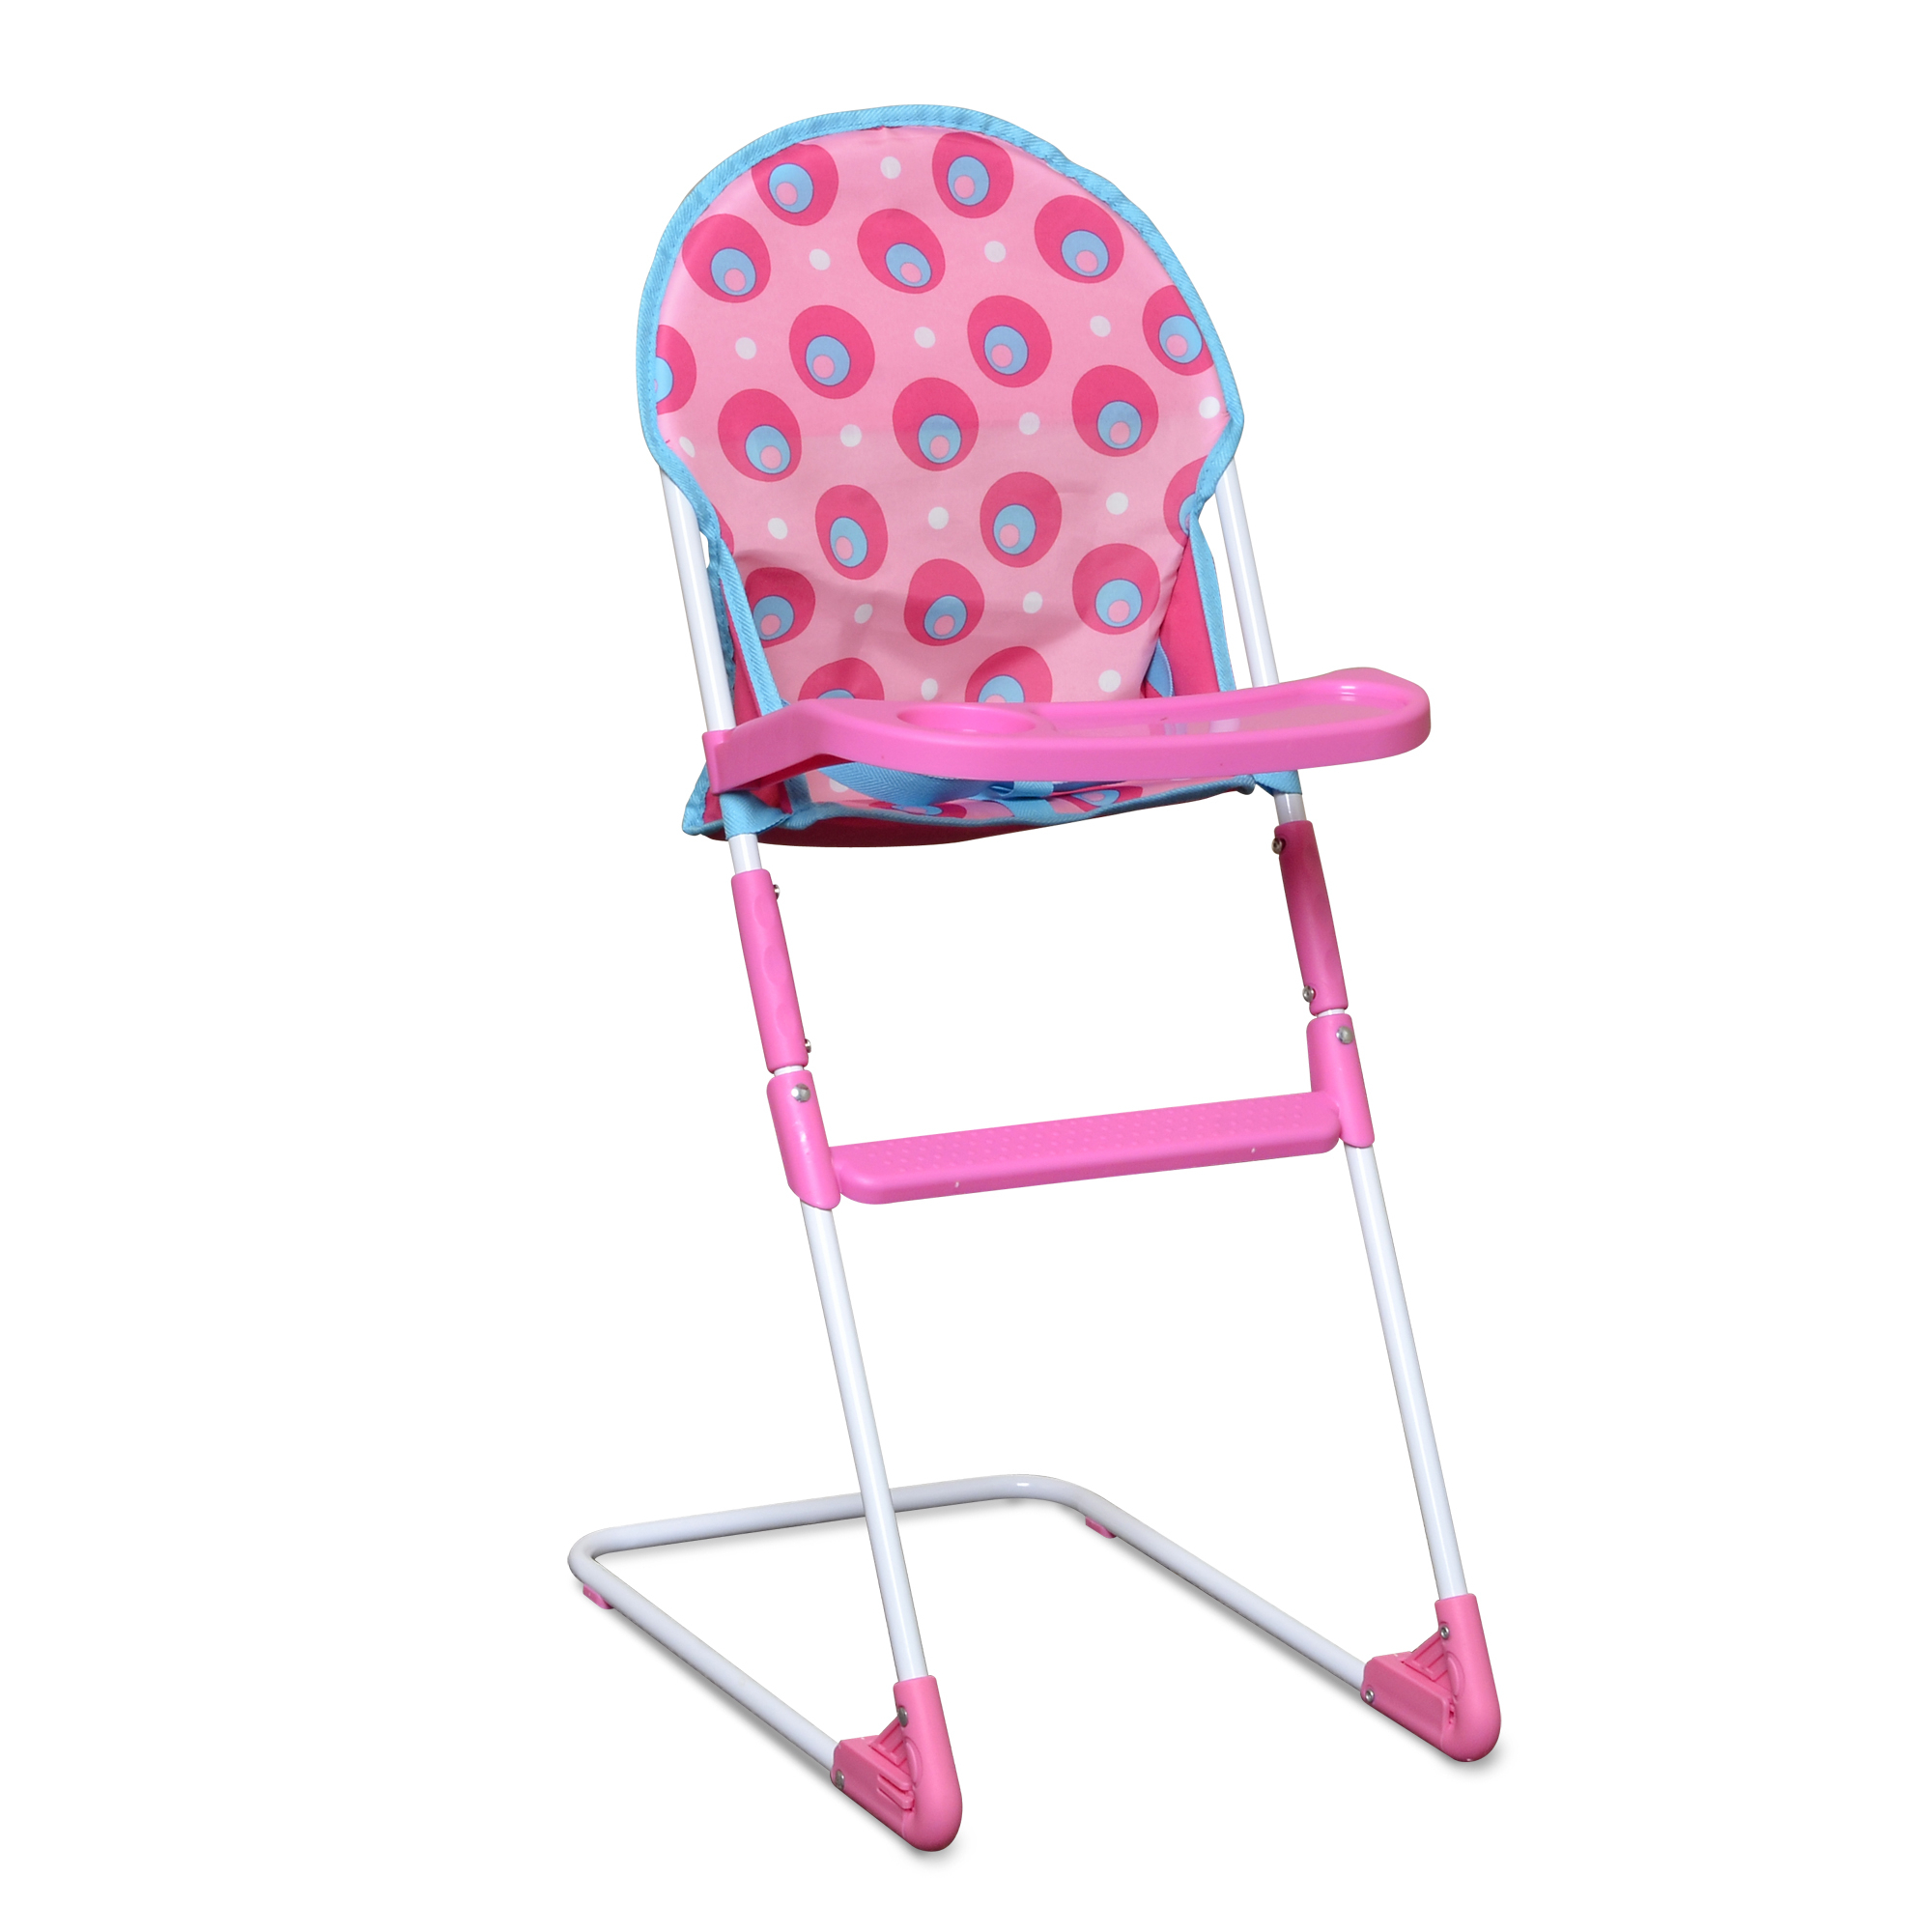 pink high chairs chair a half deluxe doll  kmart